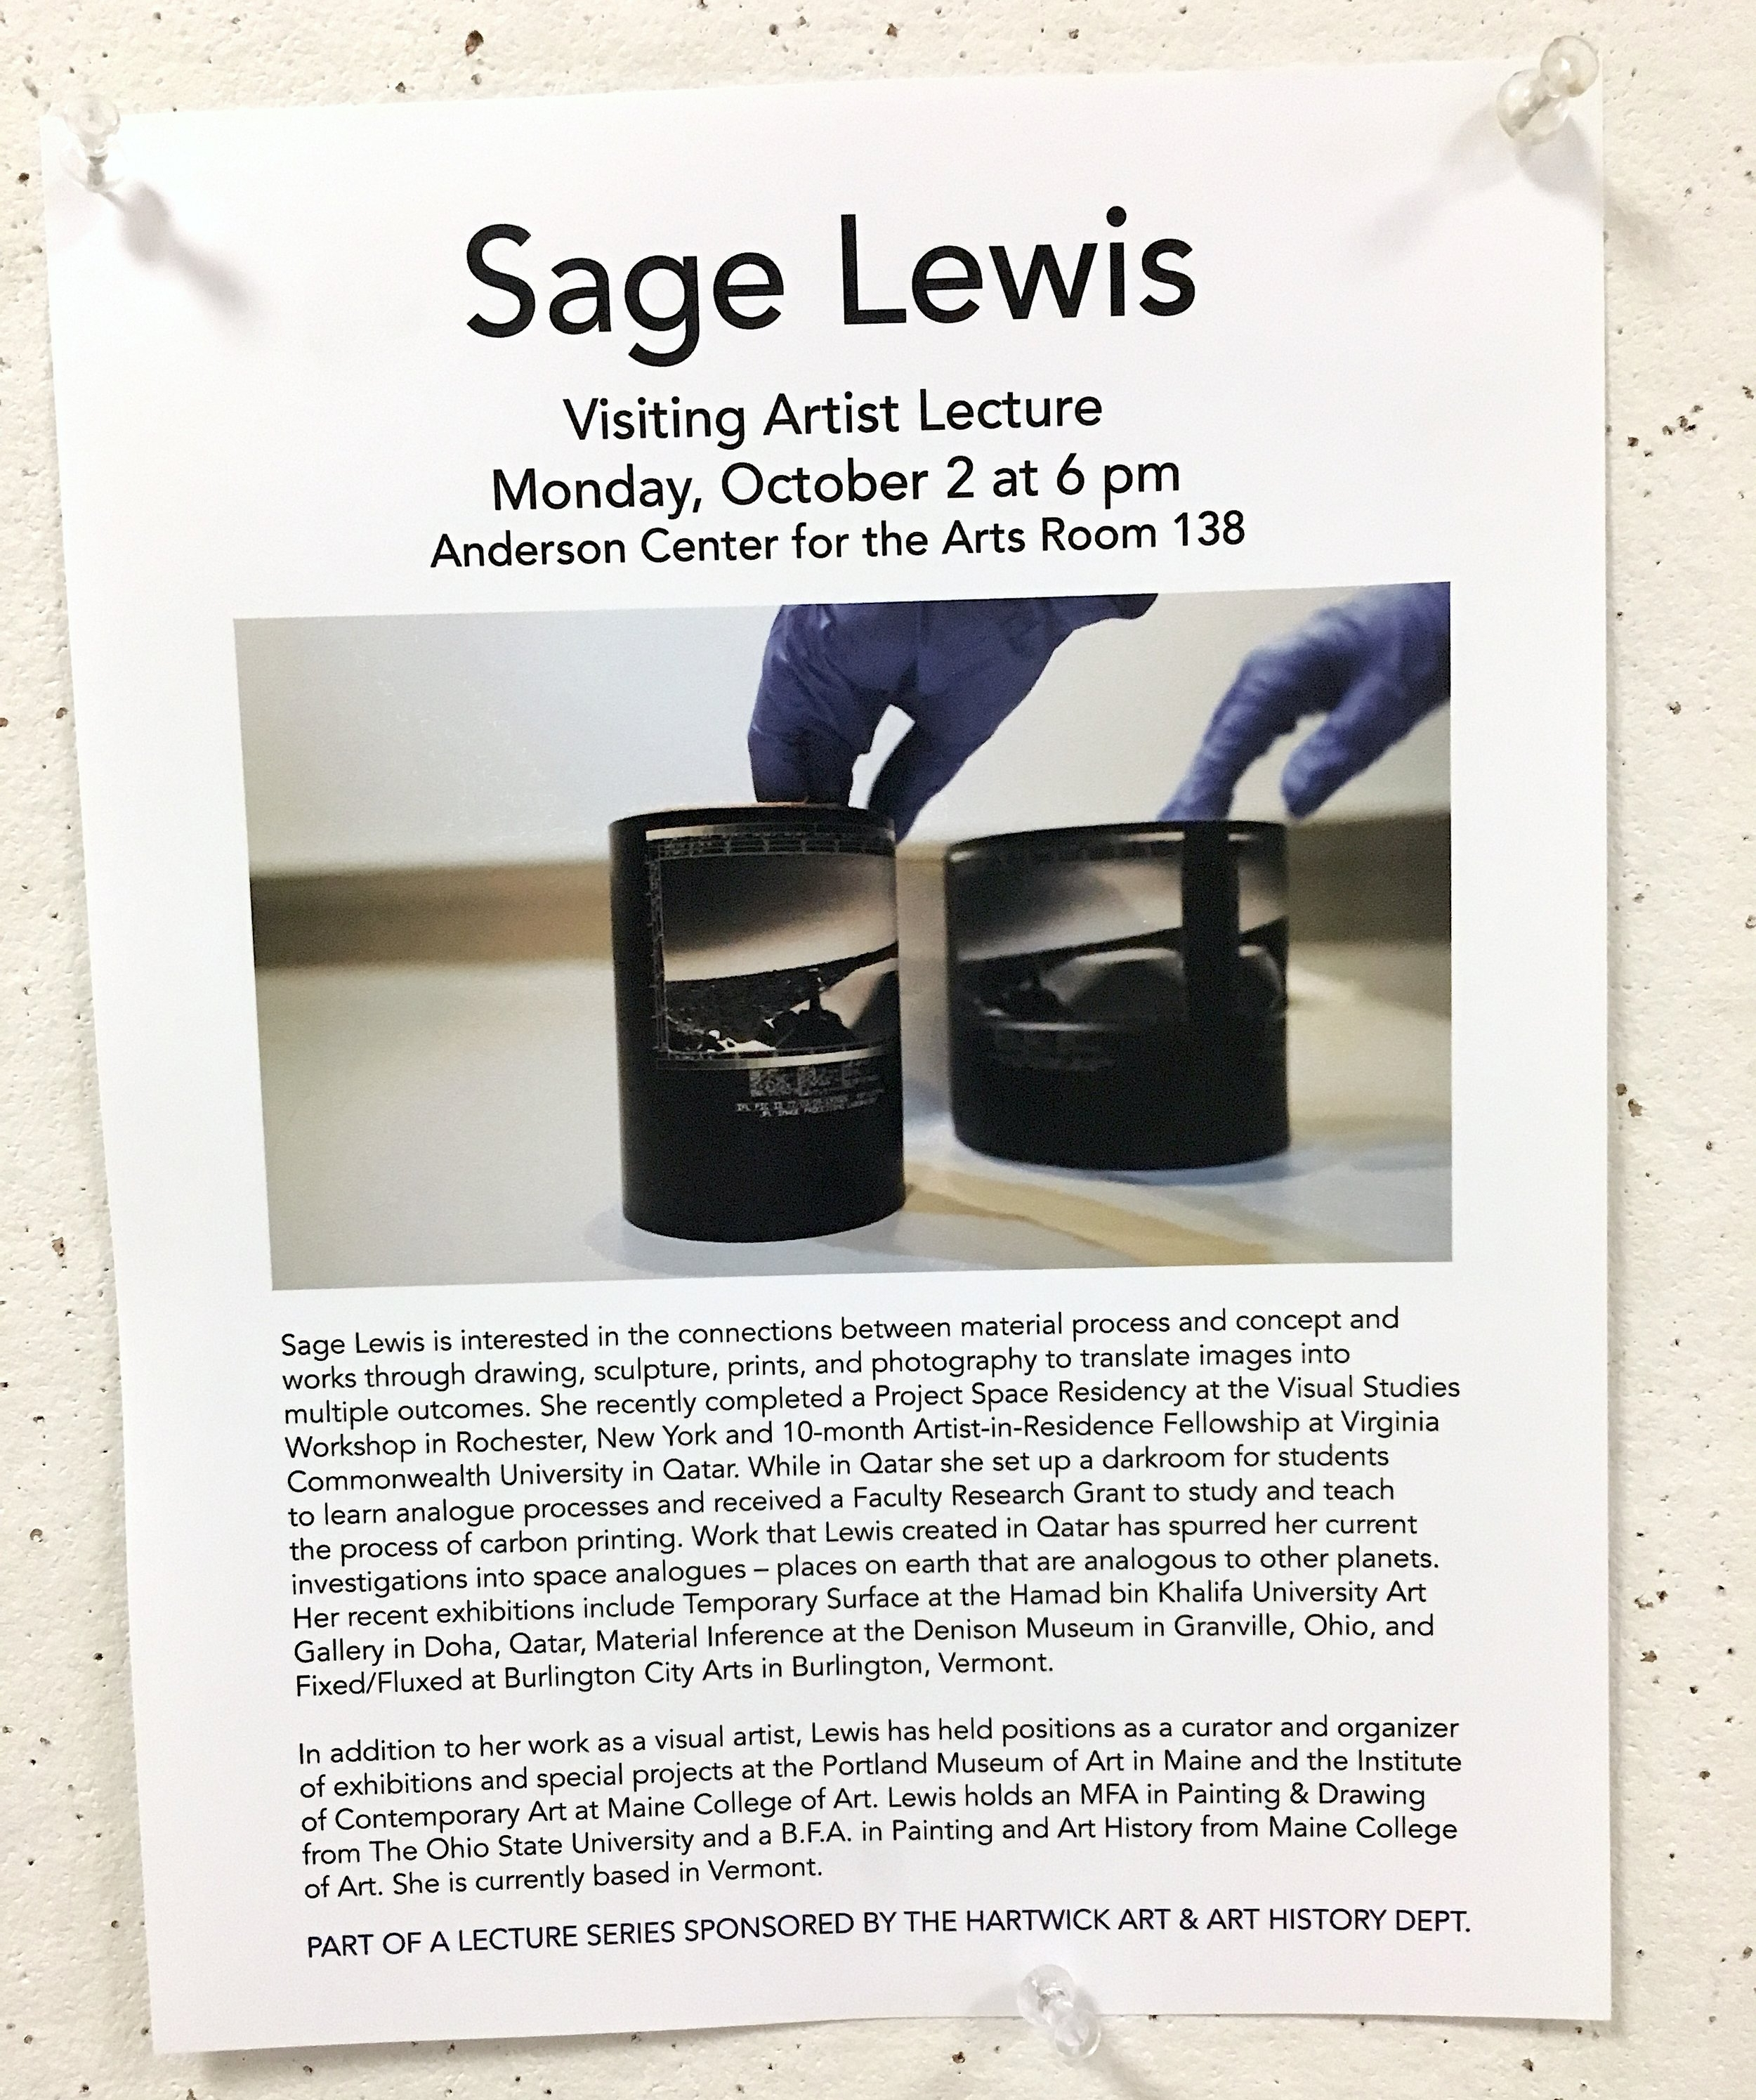 Visiting Artist - On October 2nd I'll be giving a talk about my work at Hartwick College in Oneonta, NY. Many thanks to the Hartwick Art & Art History Department for sponsoring my lecture. If you're in the area, please come!